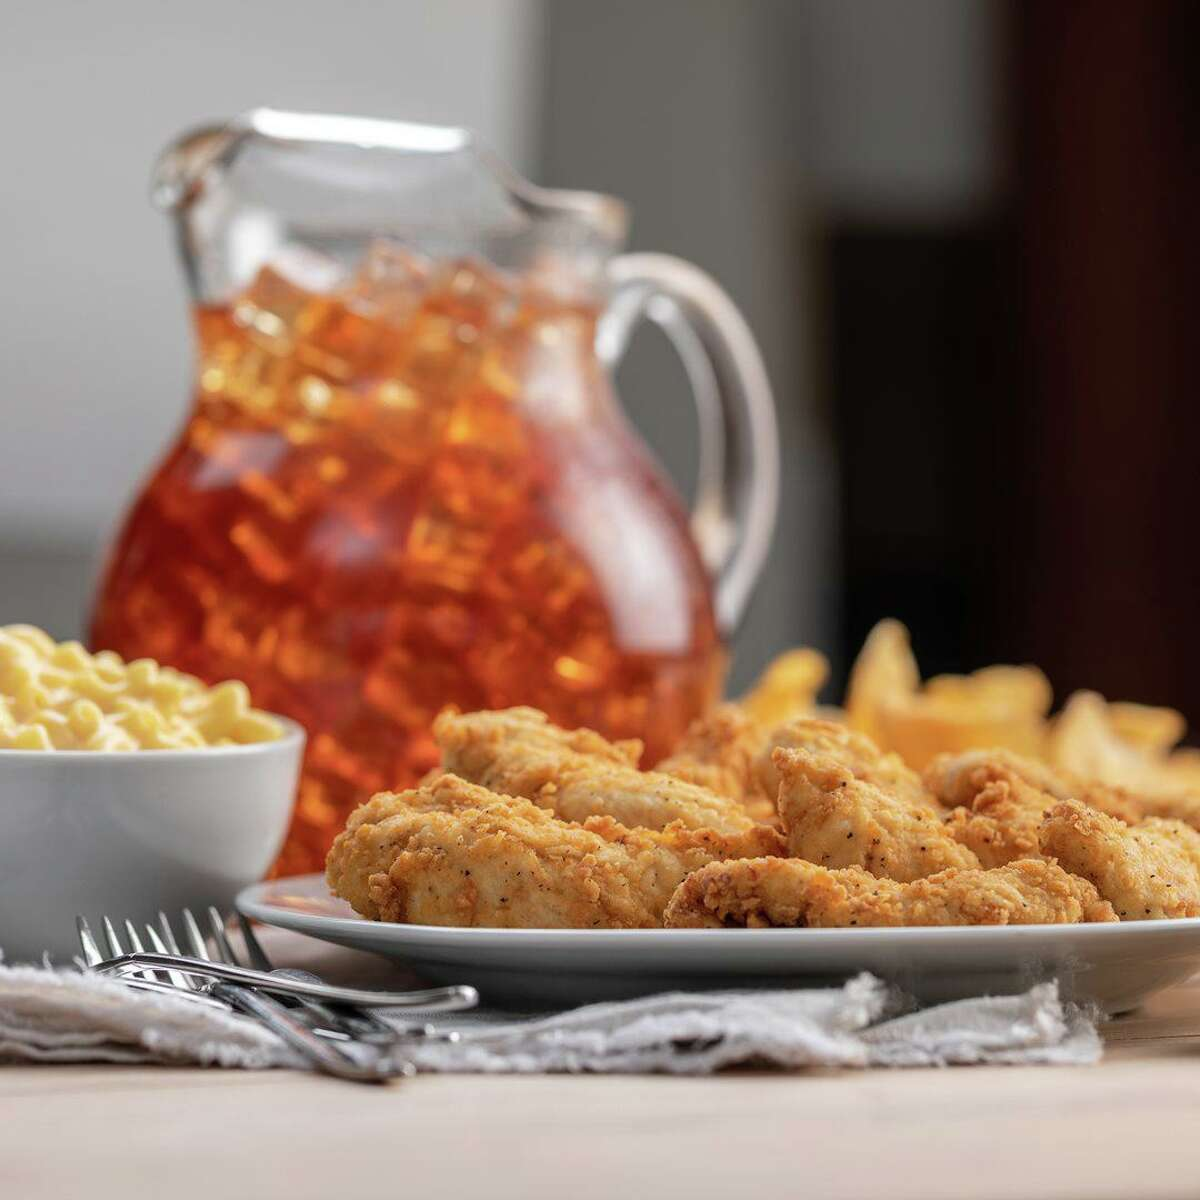 Craft sandwiches, hand-breaded tenders and chicken waffles are on the menu at the new Slim Chickens restaurant in La Porte.